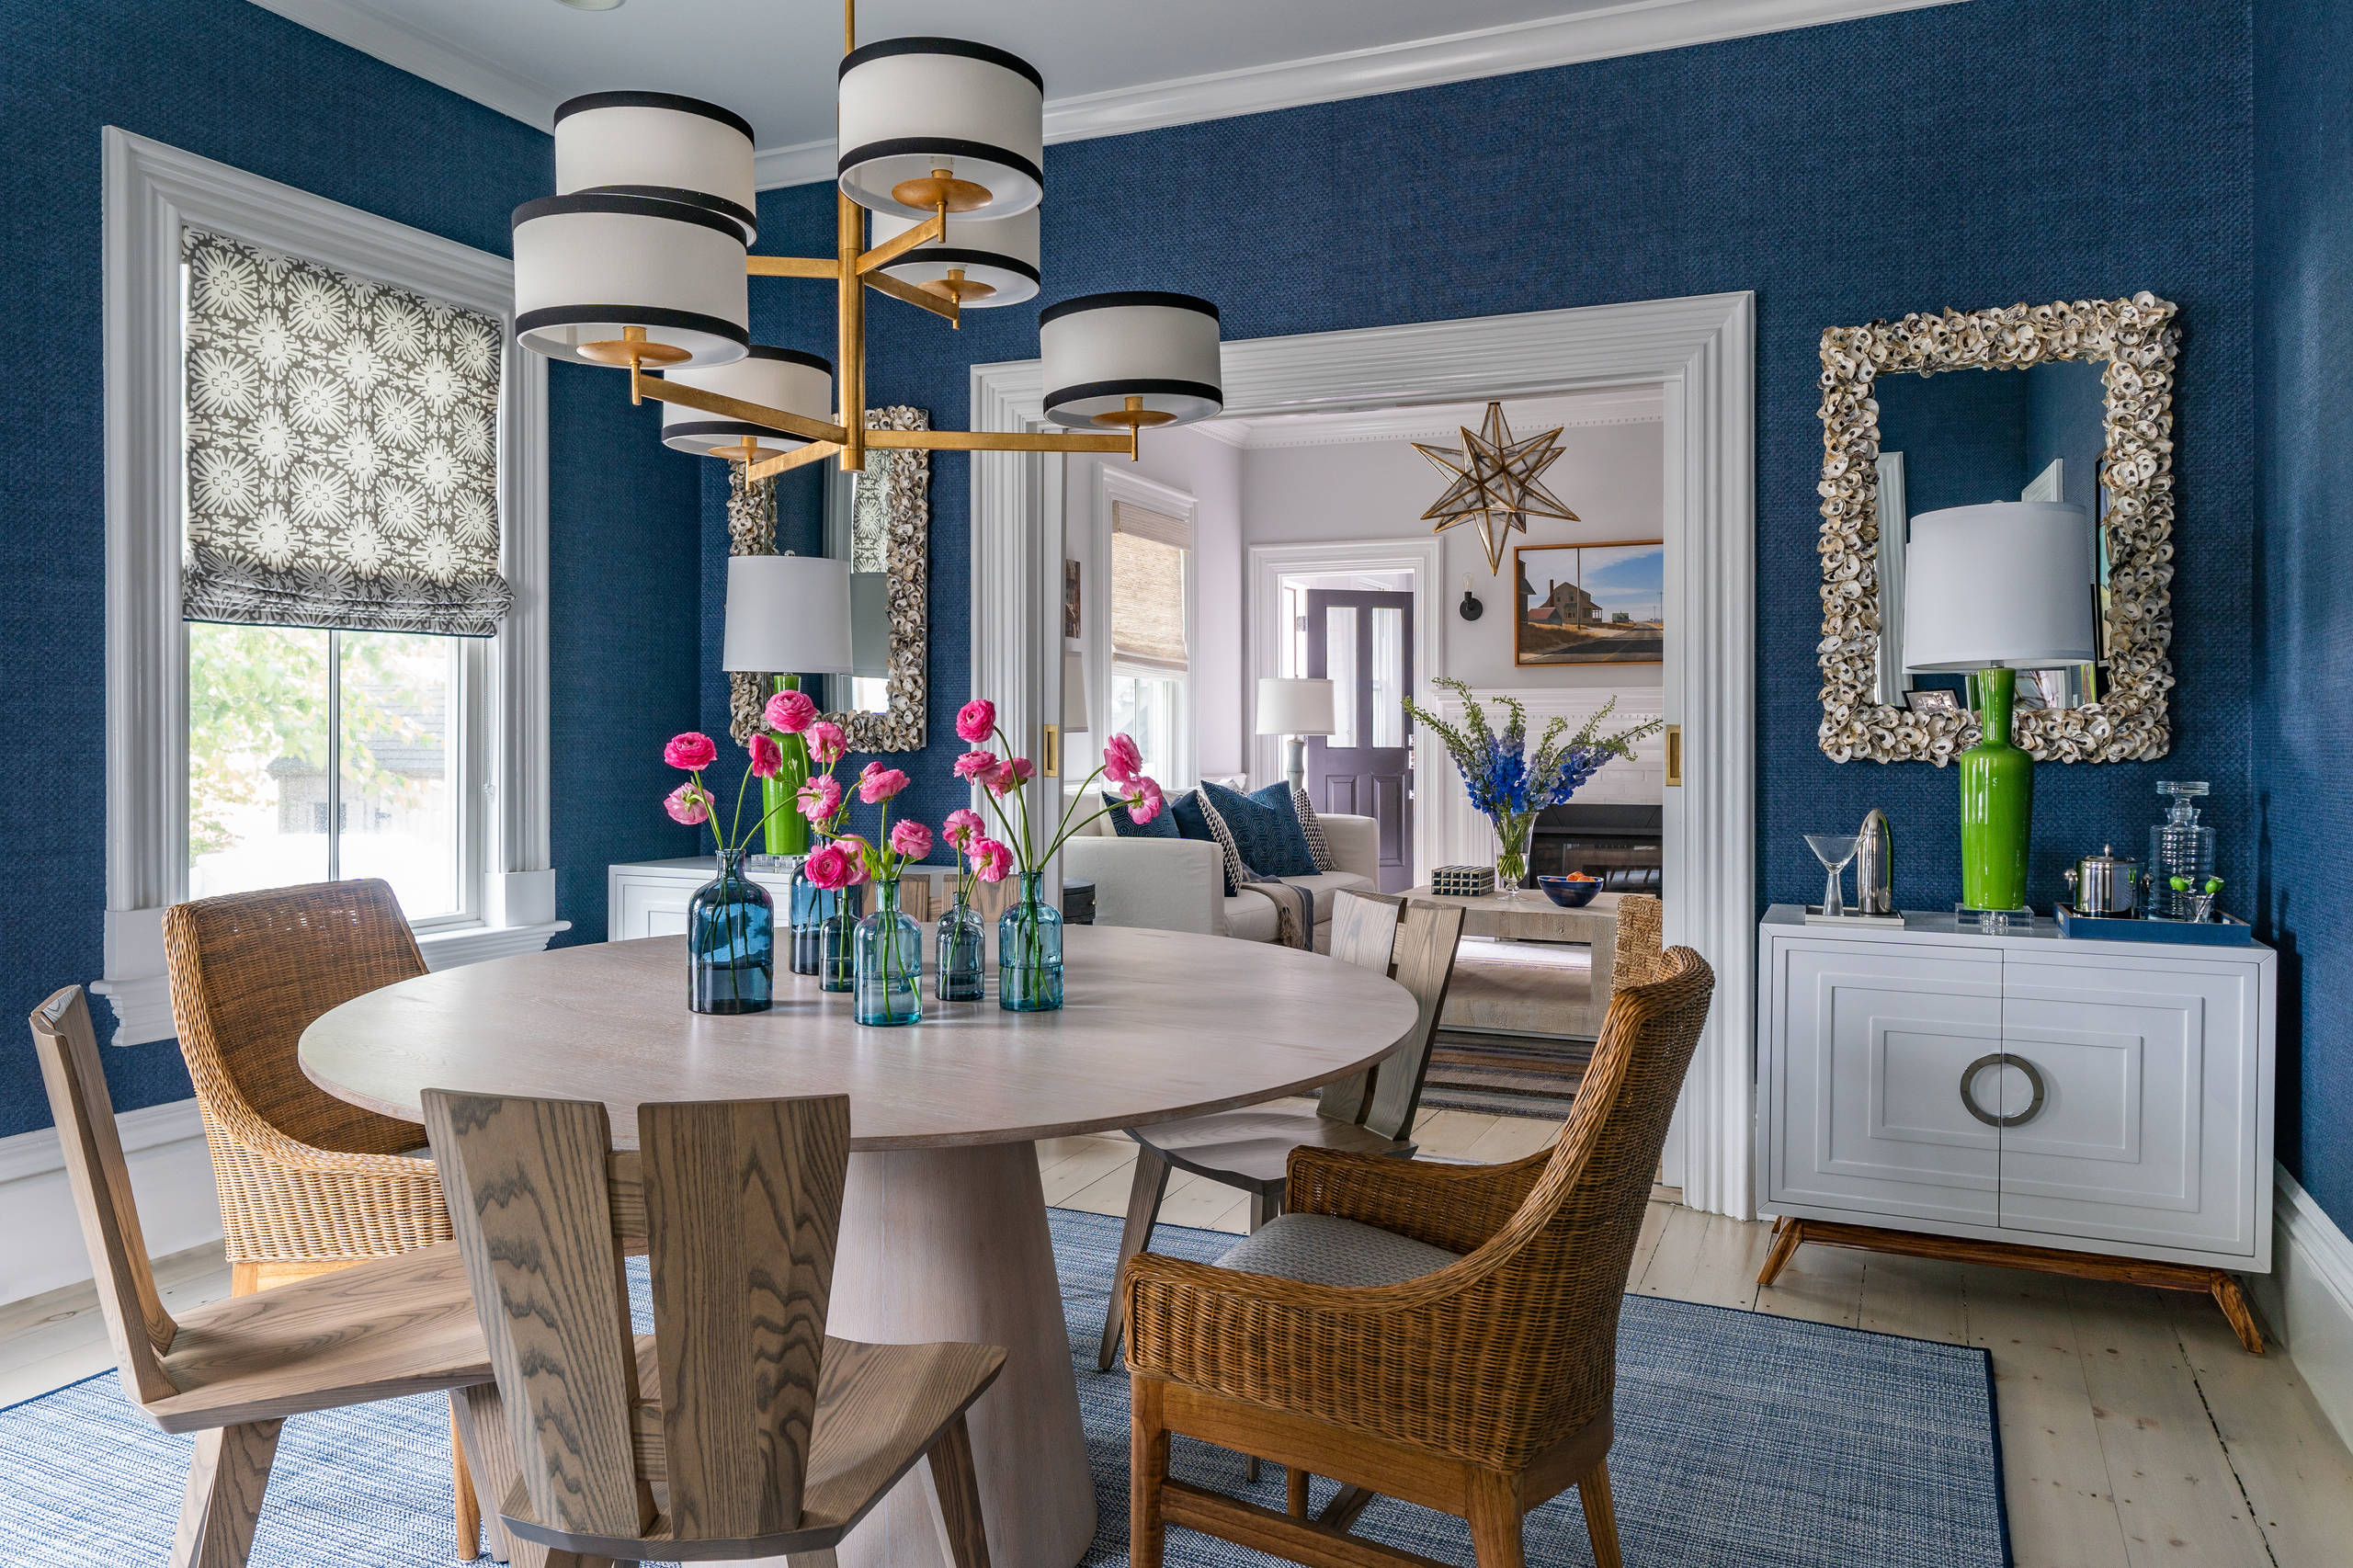 75 Beautiful Blue Dining Room Pictures Ideas February 2021 Houzz